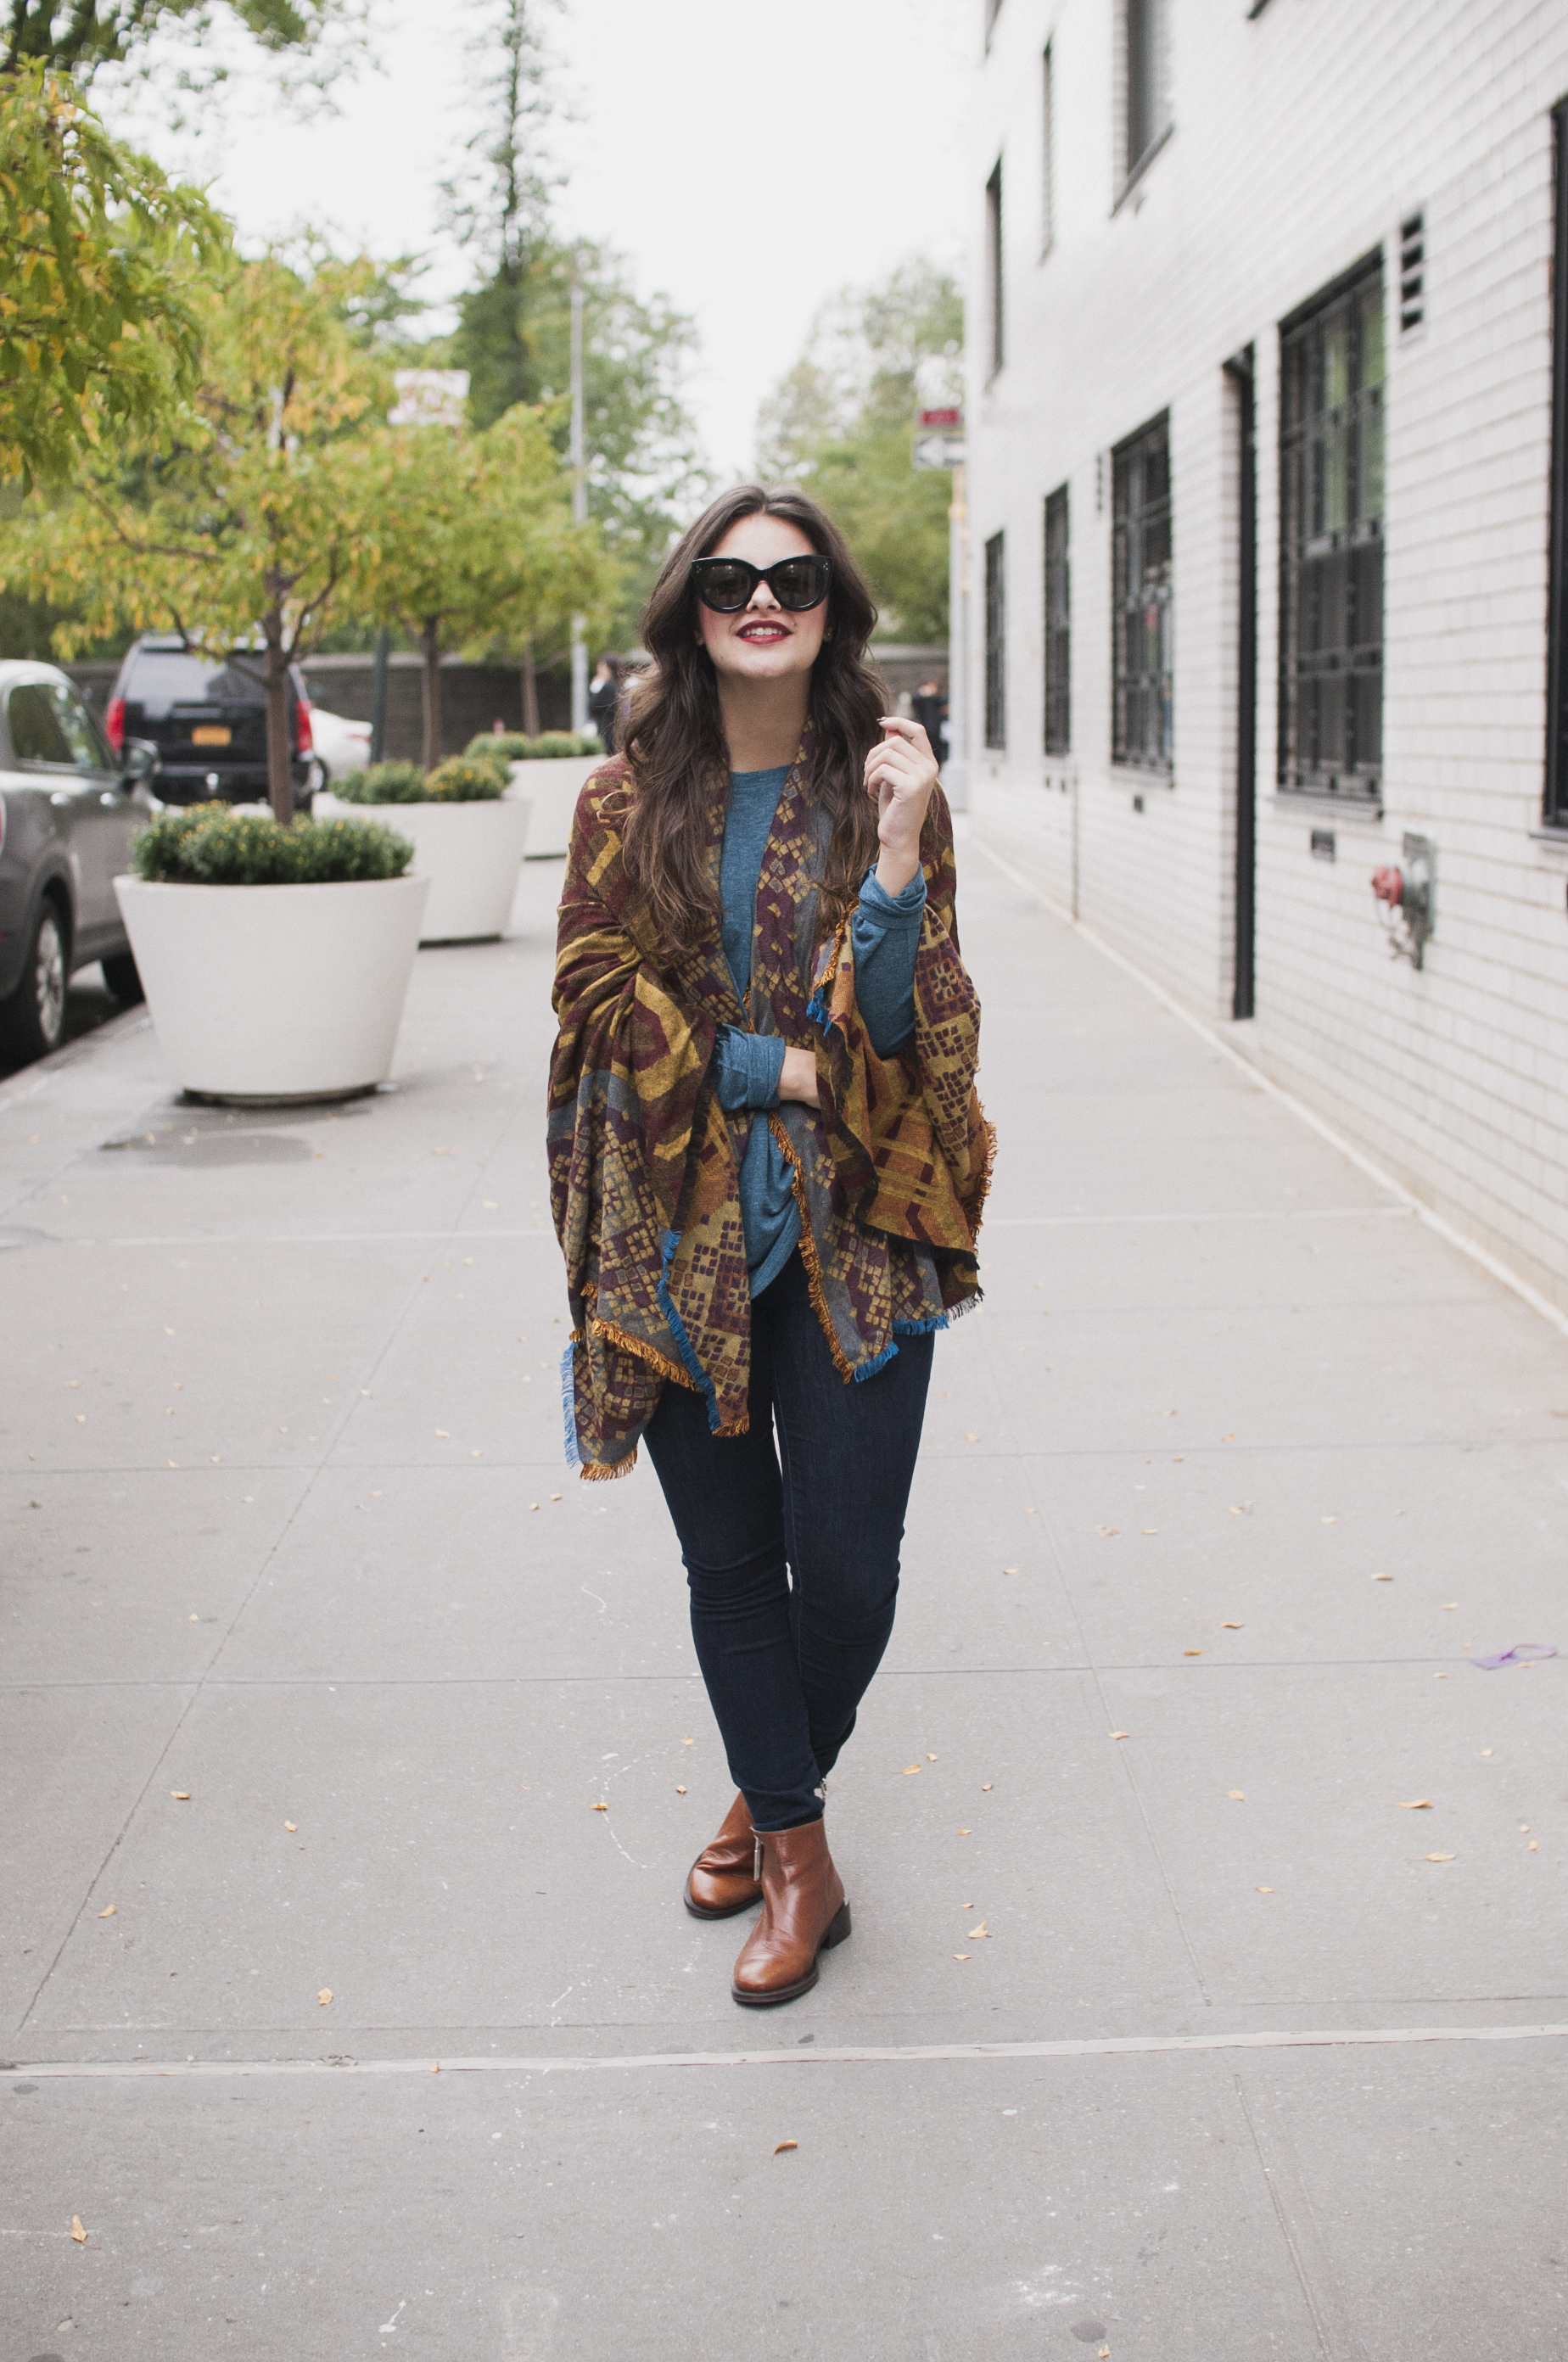 Wearing Fall Scarves